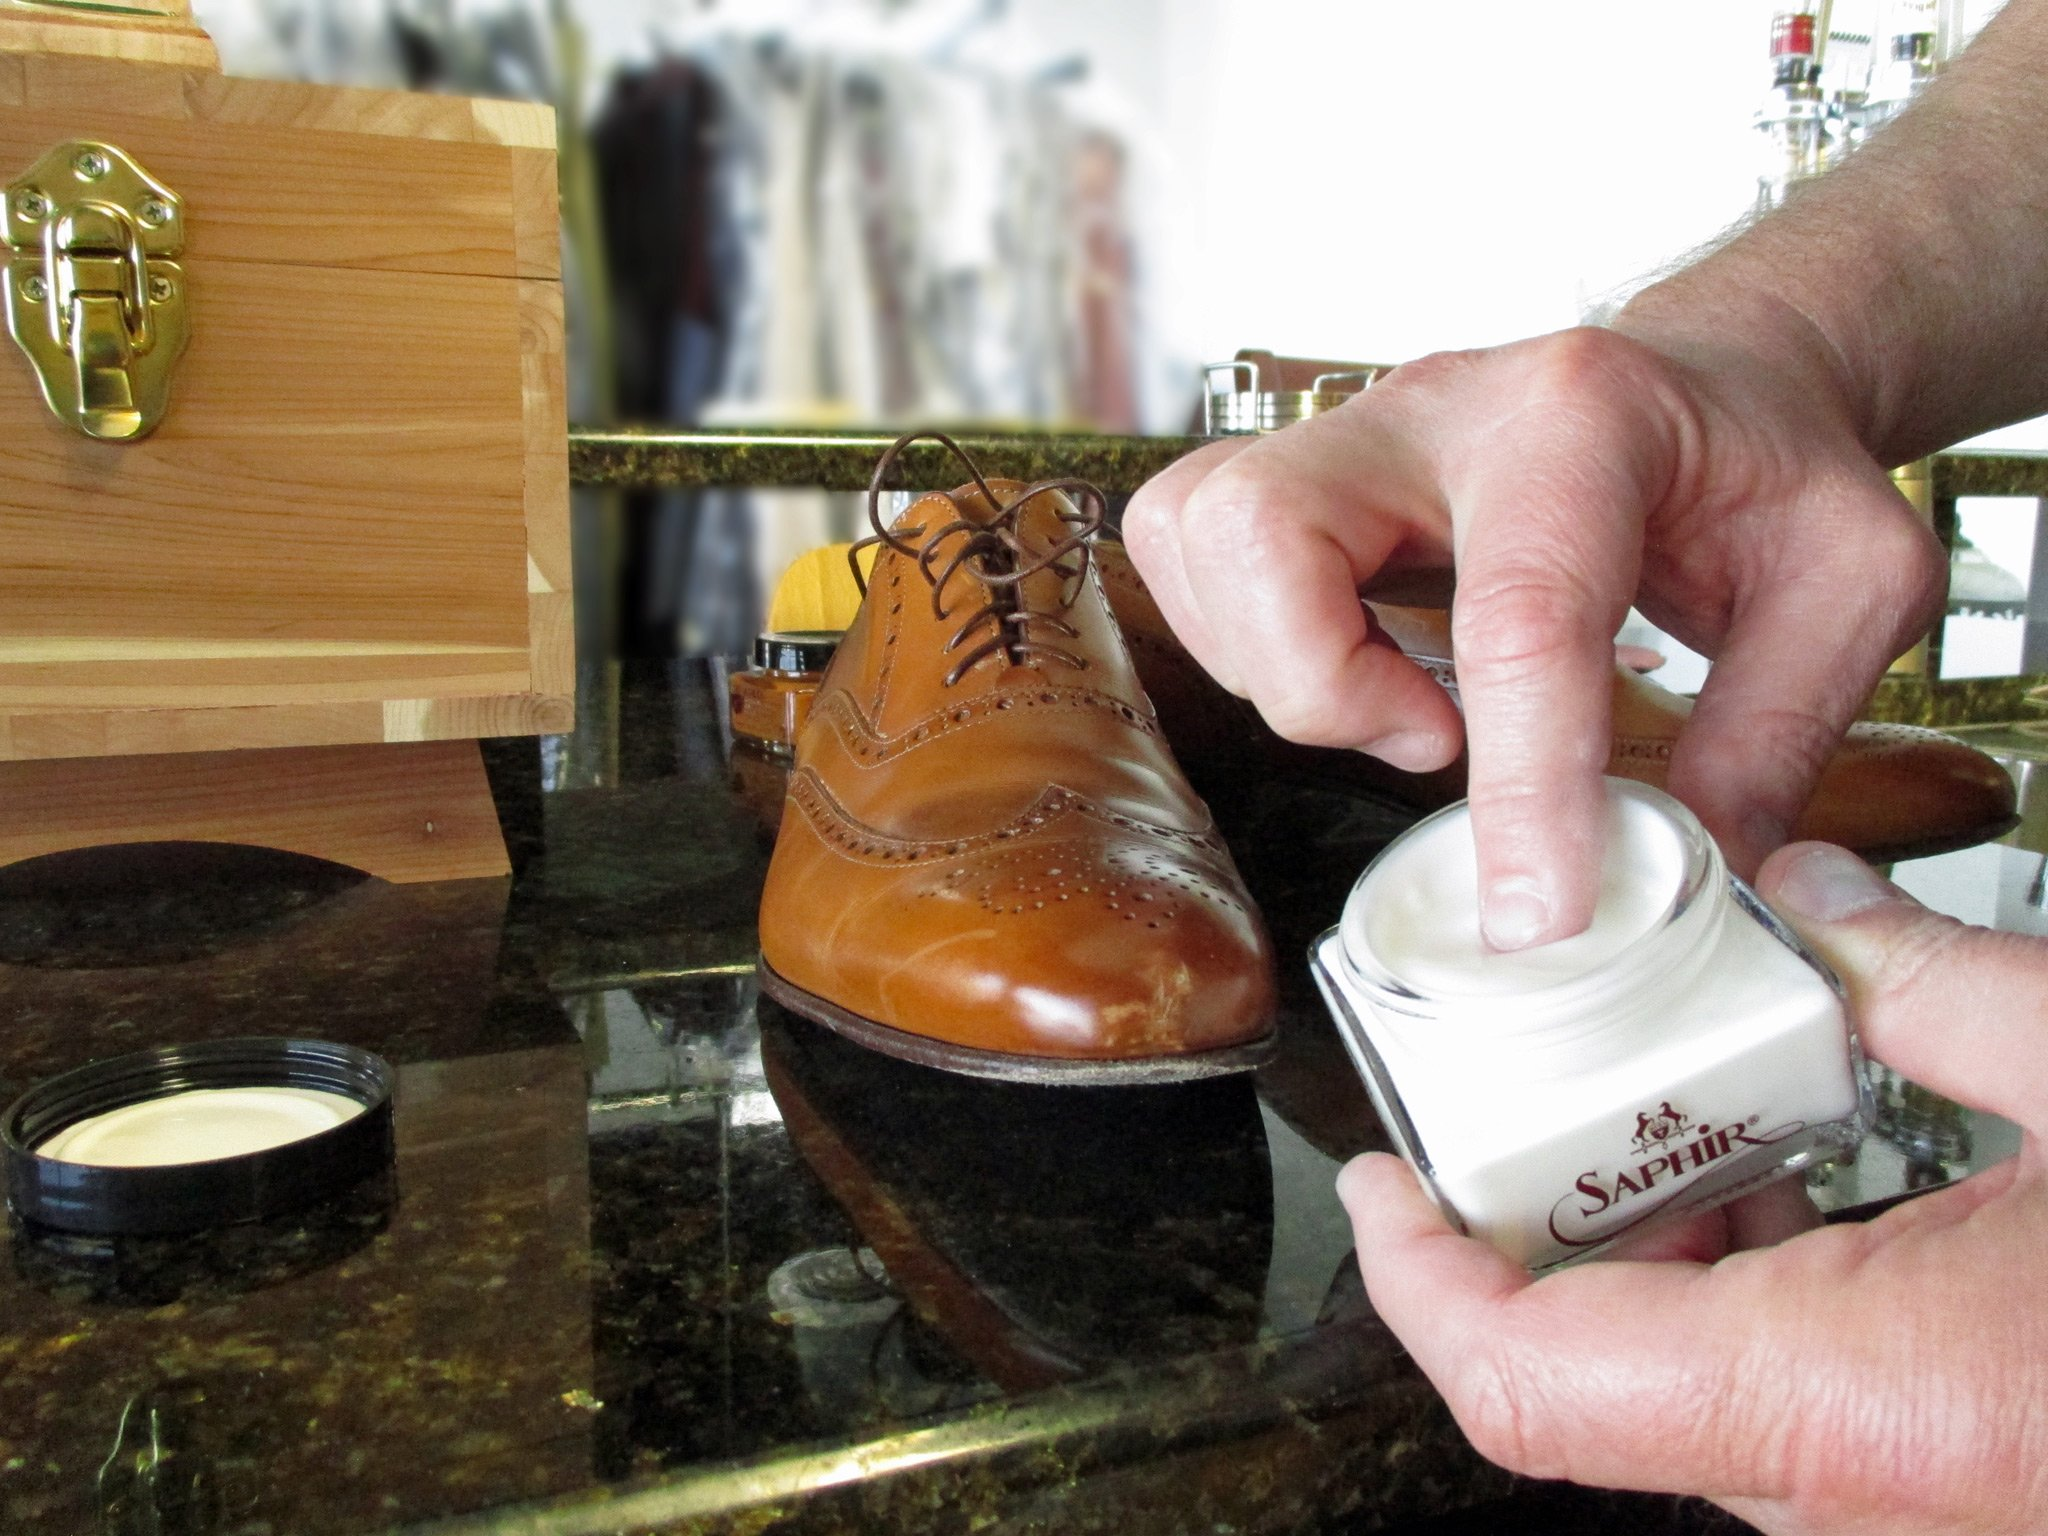 How To Repair Scratch On Soft Leather Shoes